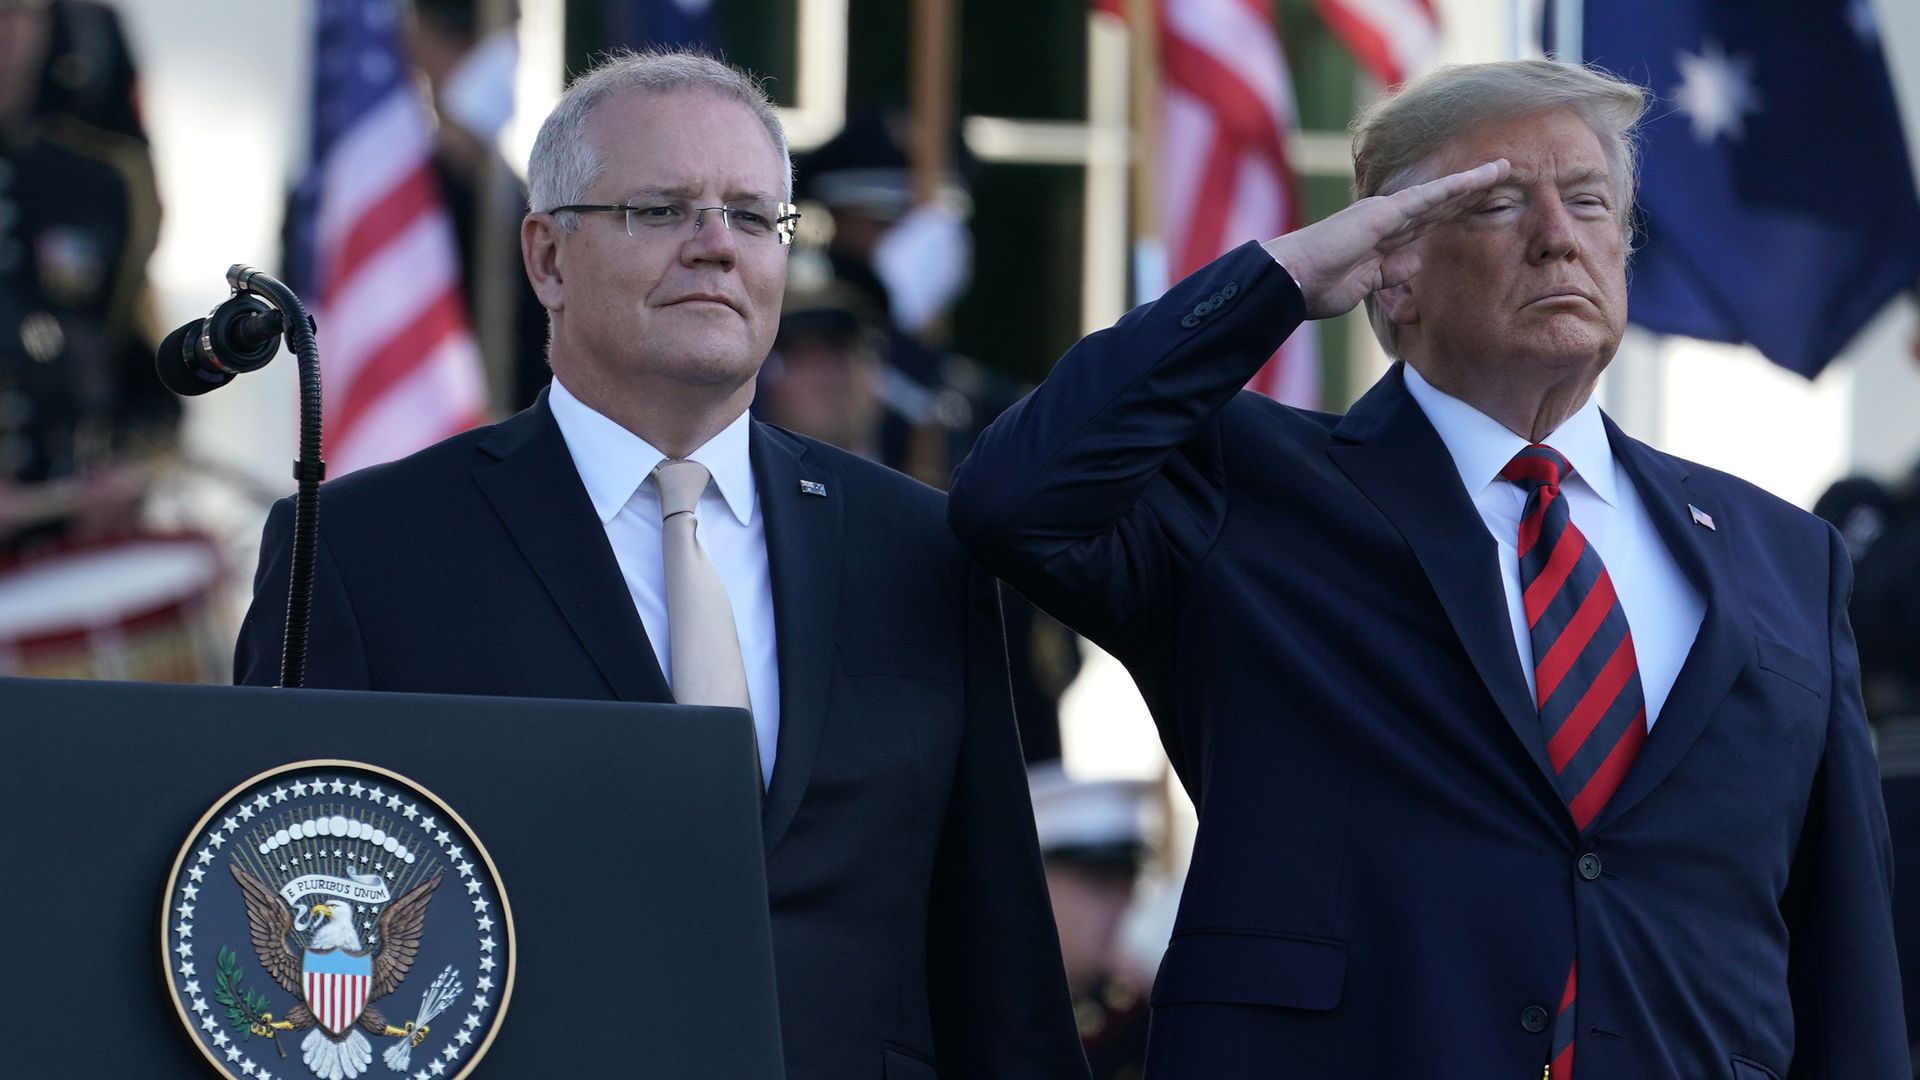 Morrison and Trump together.